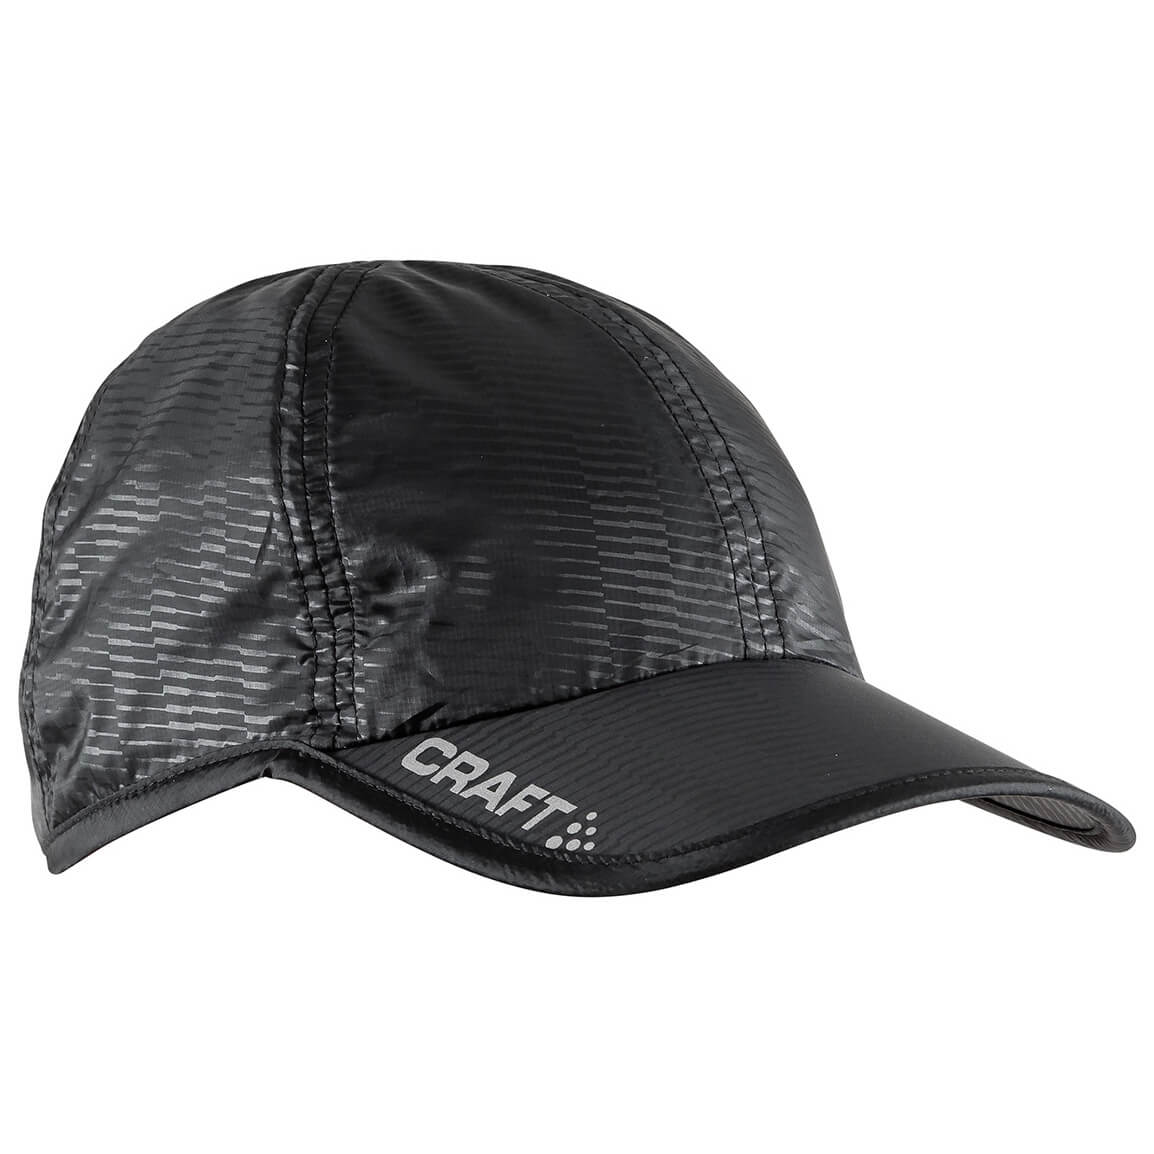 Craft uv cap cap buy online for Cap crafter